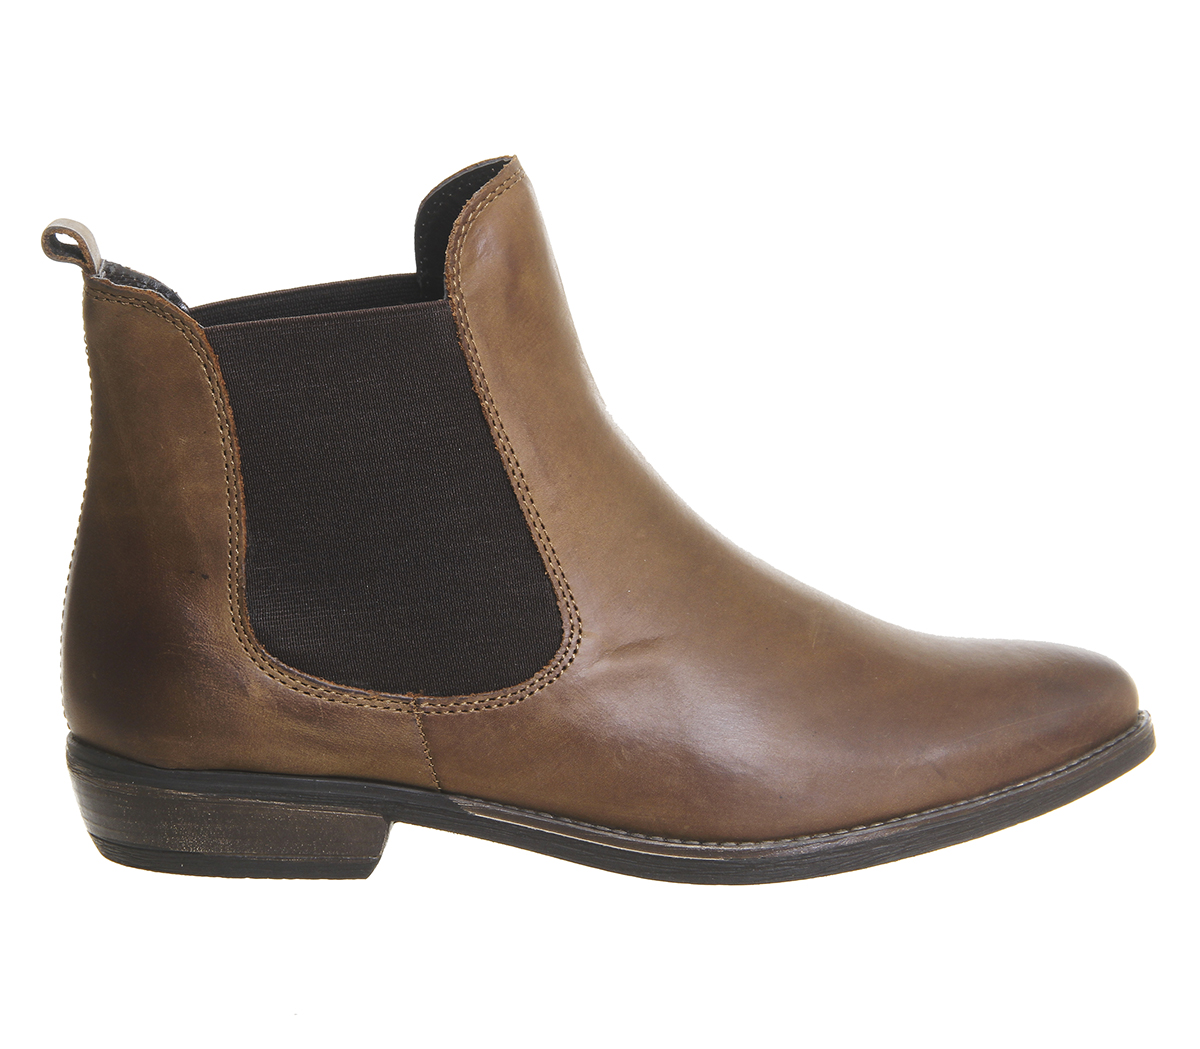 b5f807f22bbfe Womens Office Dallas 2 Chelsea Boots BROWN LEATHER Boots